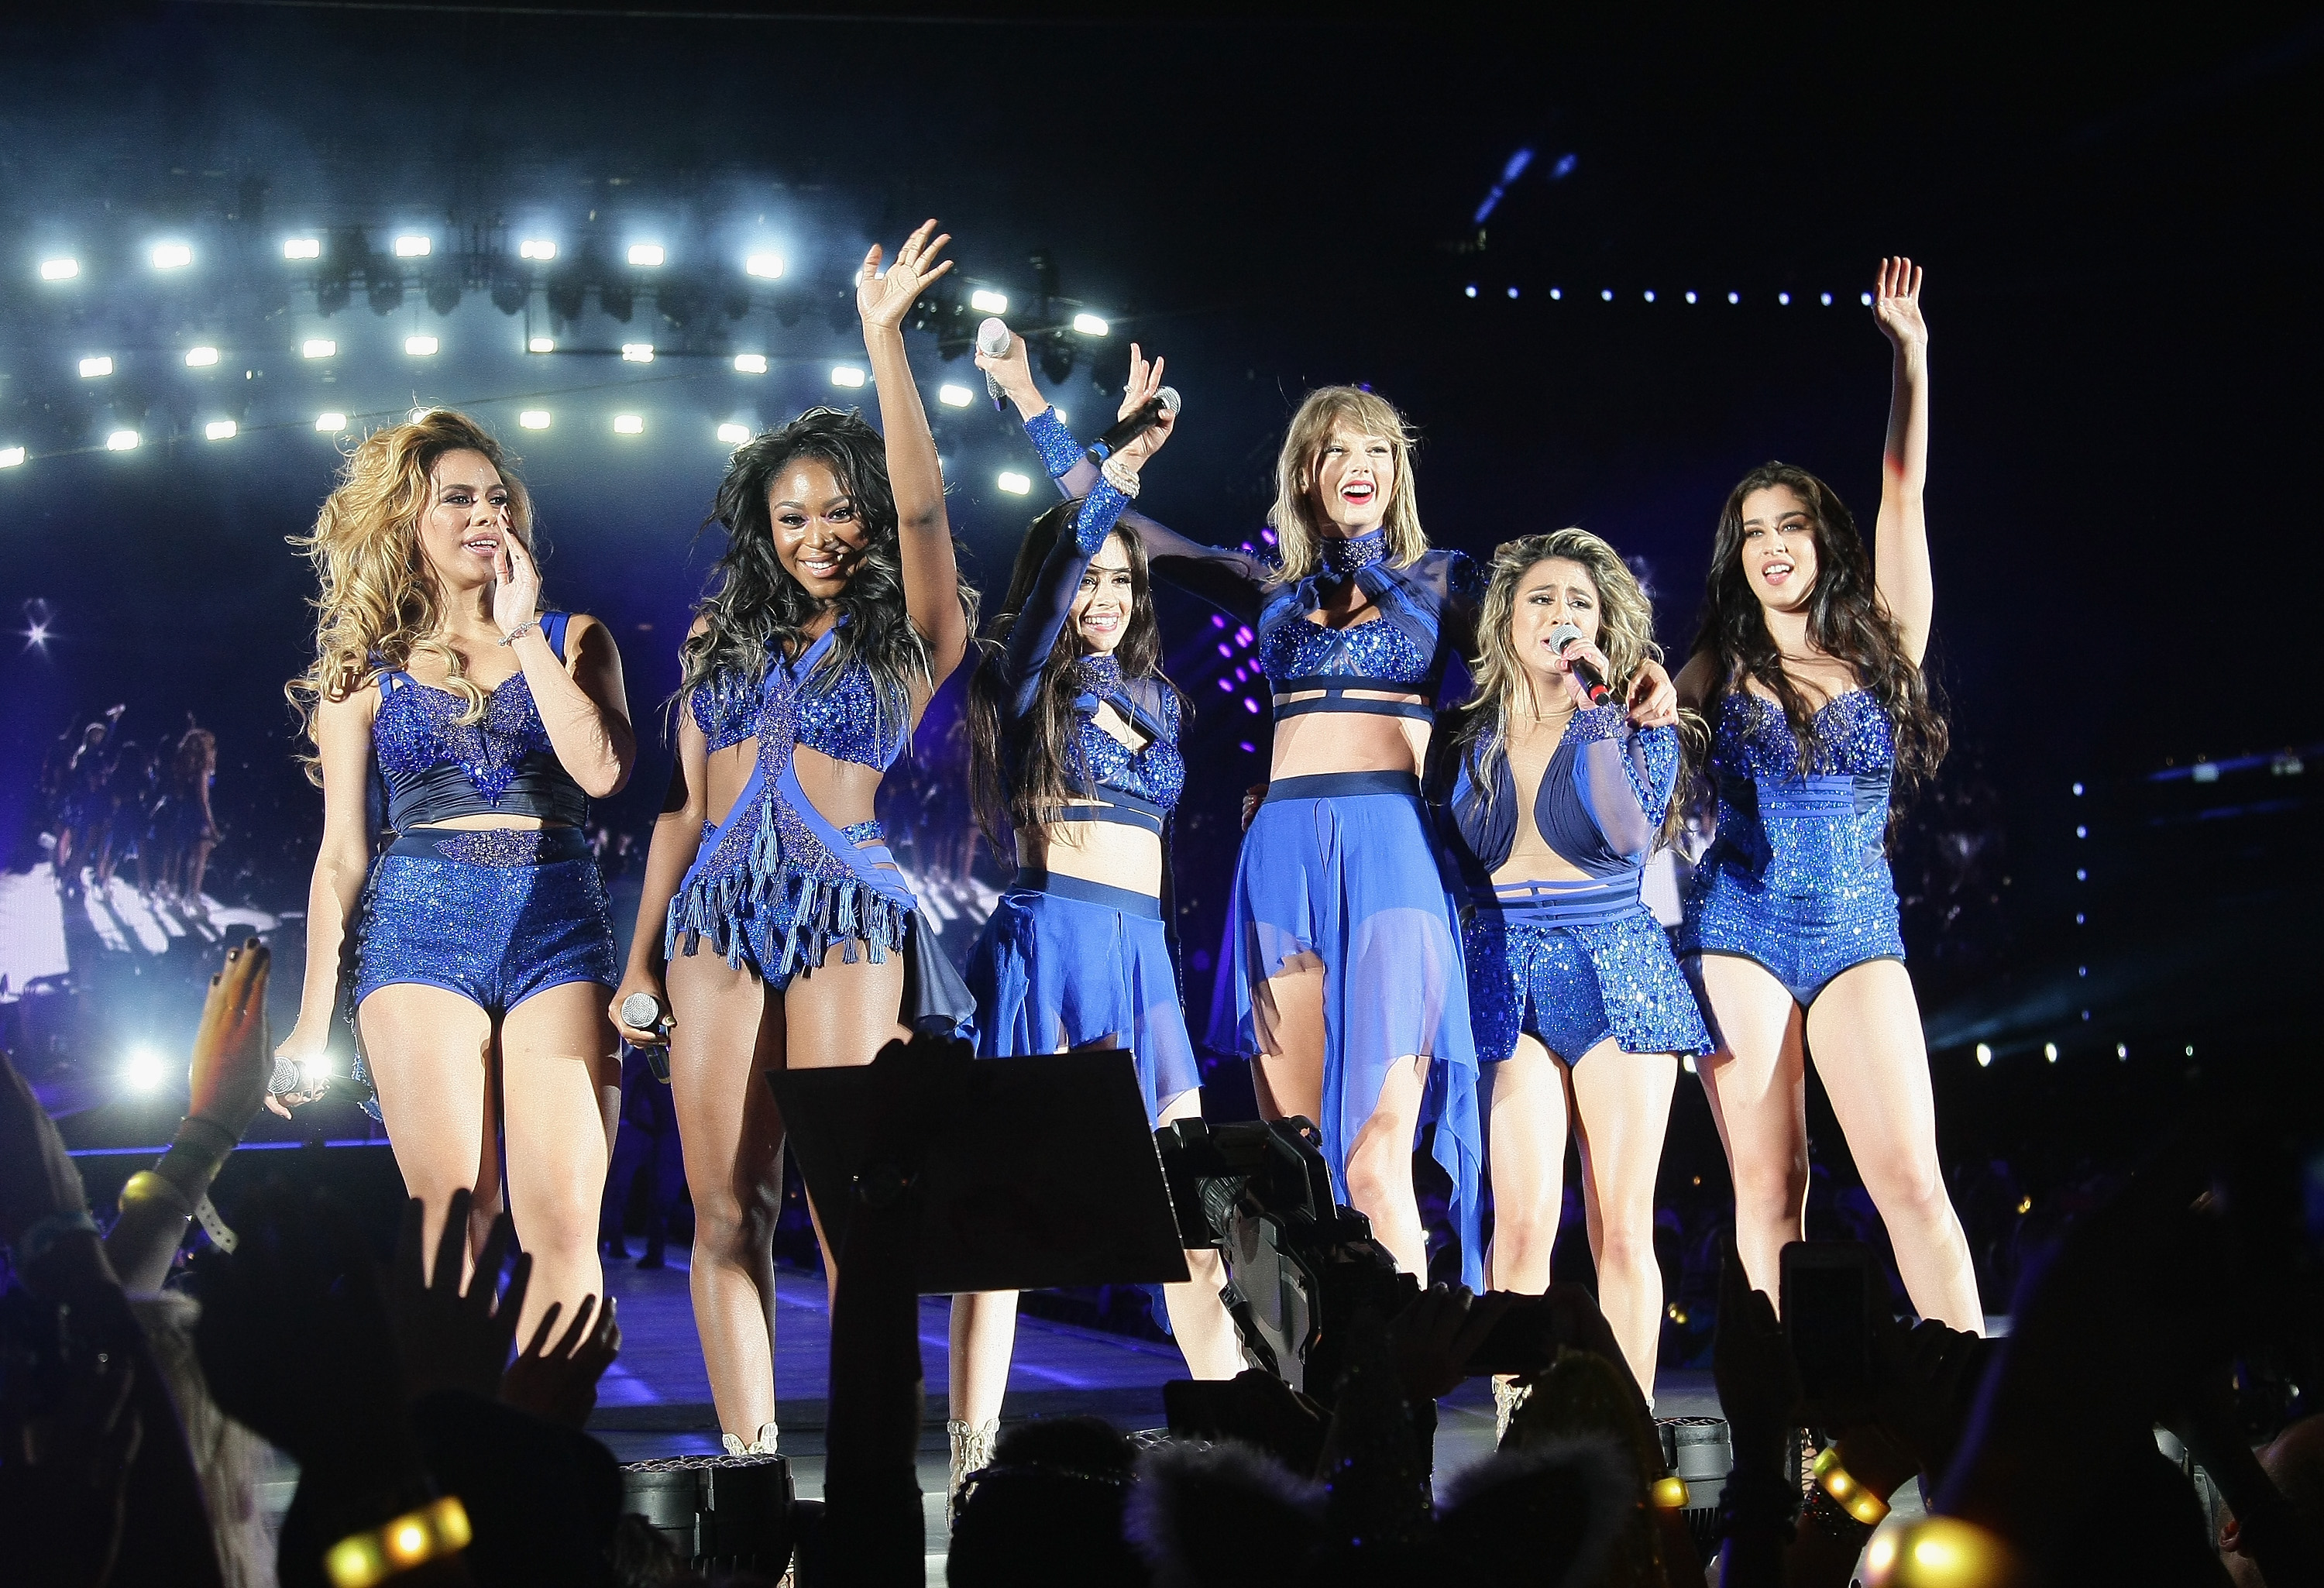 Taylor Swift and Fifth Harmony